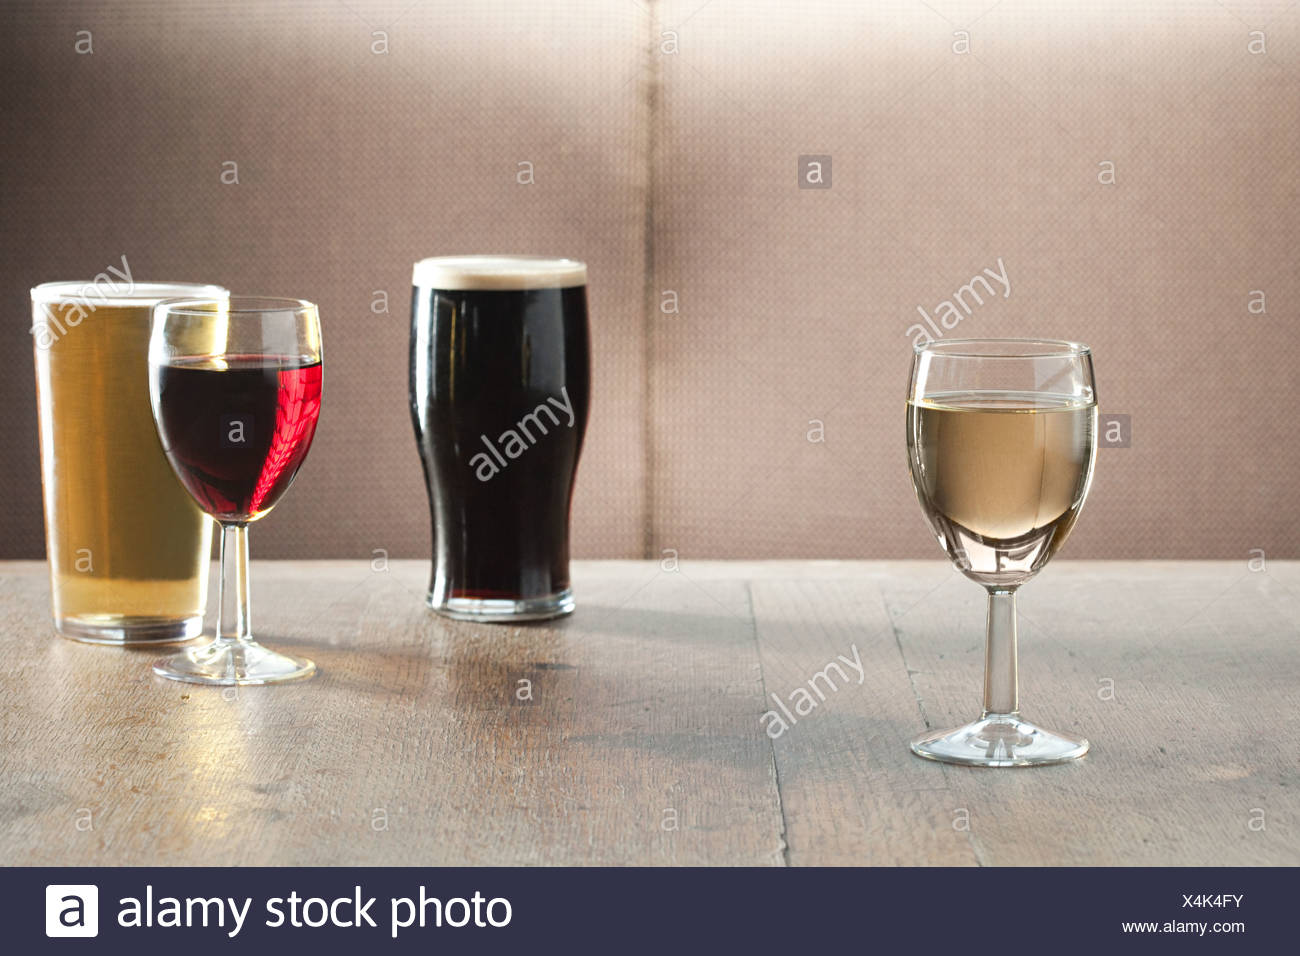 Wine and beer glasses on table in bar - Stock Image